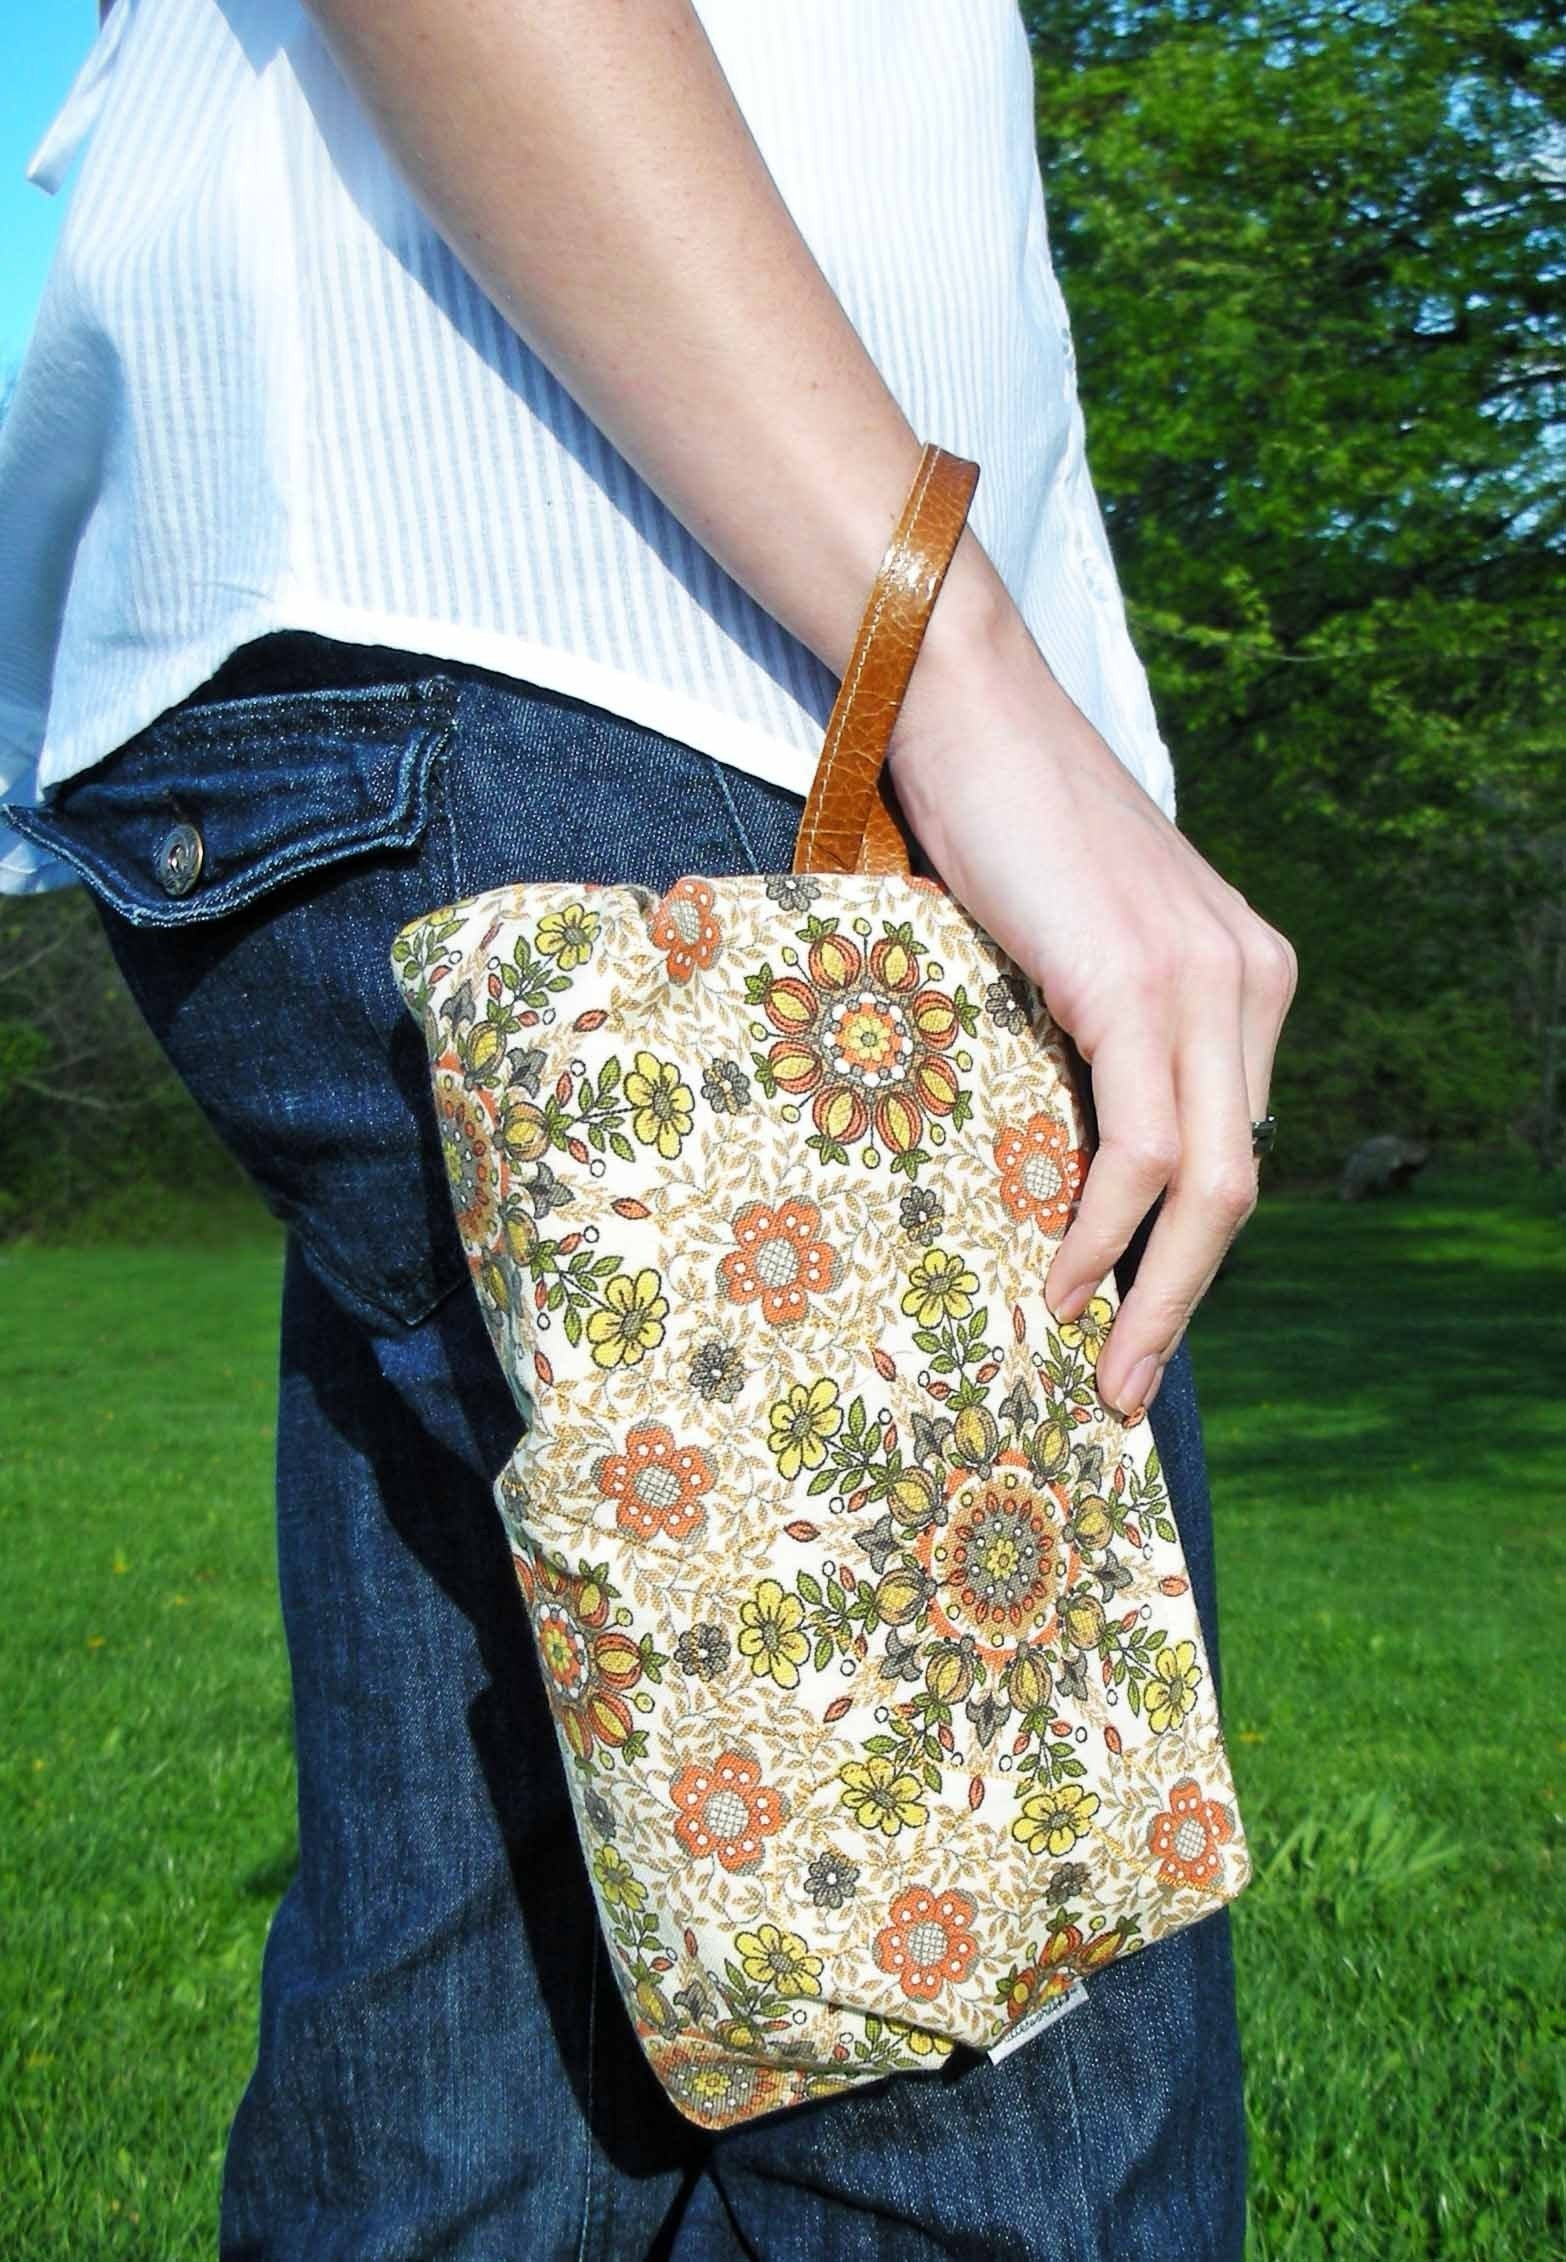 Vintage Fabric bag with Leather Strap Tonal Orange Floral- Calico Kaleidoscope Dahling Wristbag